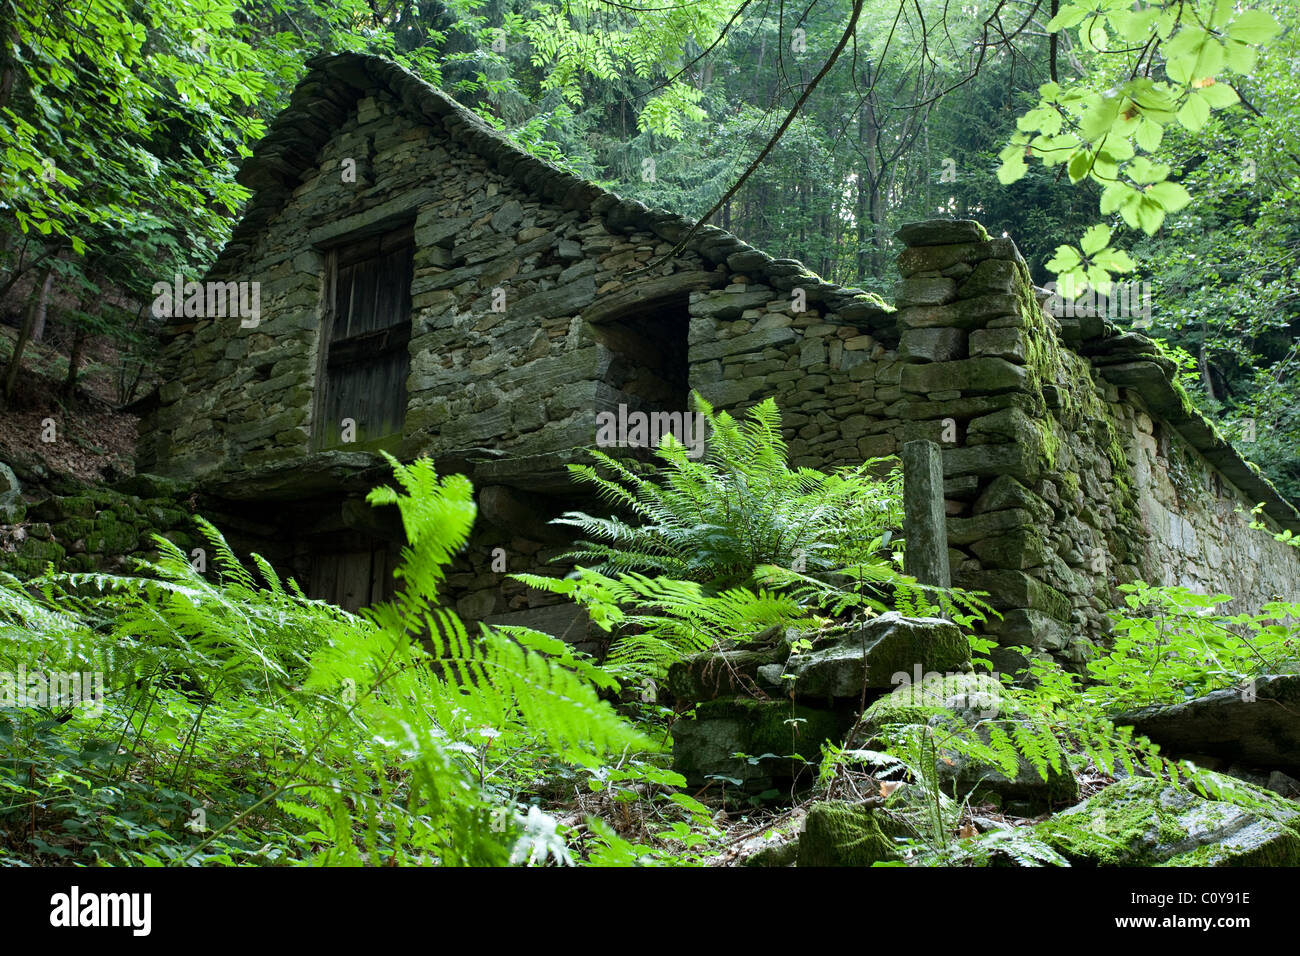 A Rustic Stone Cottage In Forest